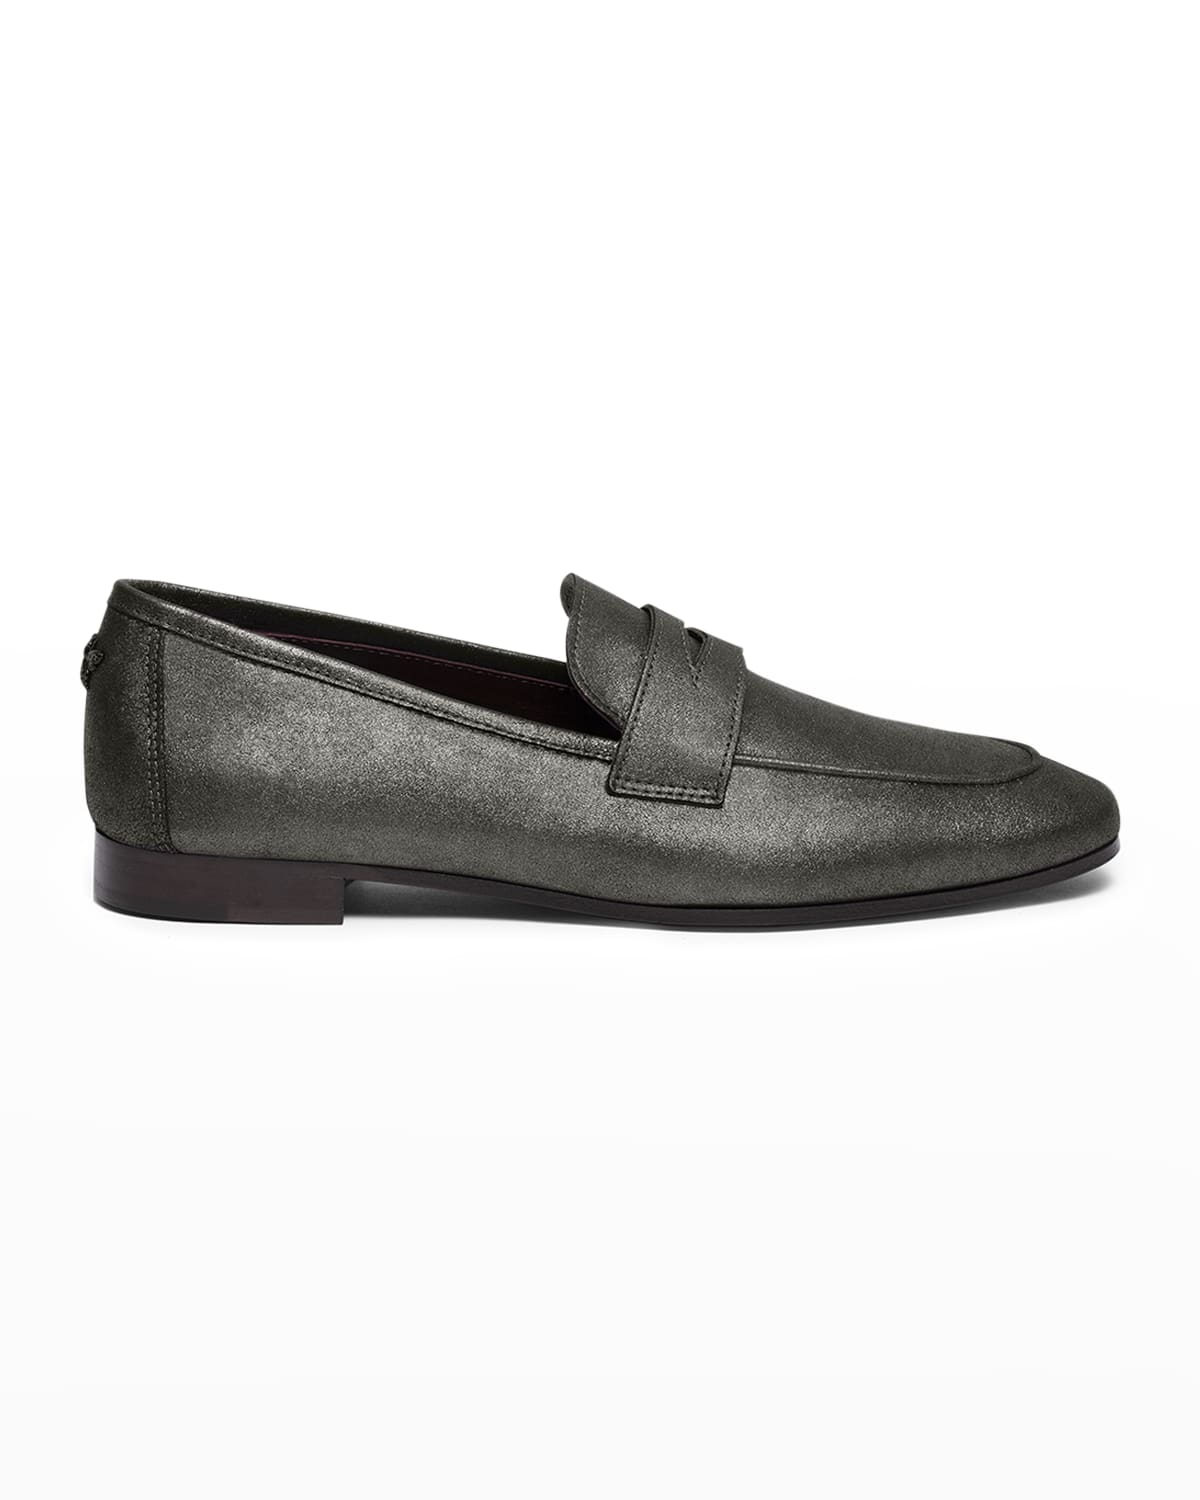 Brushed Metal Leather Penny Loafers